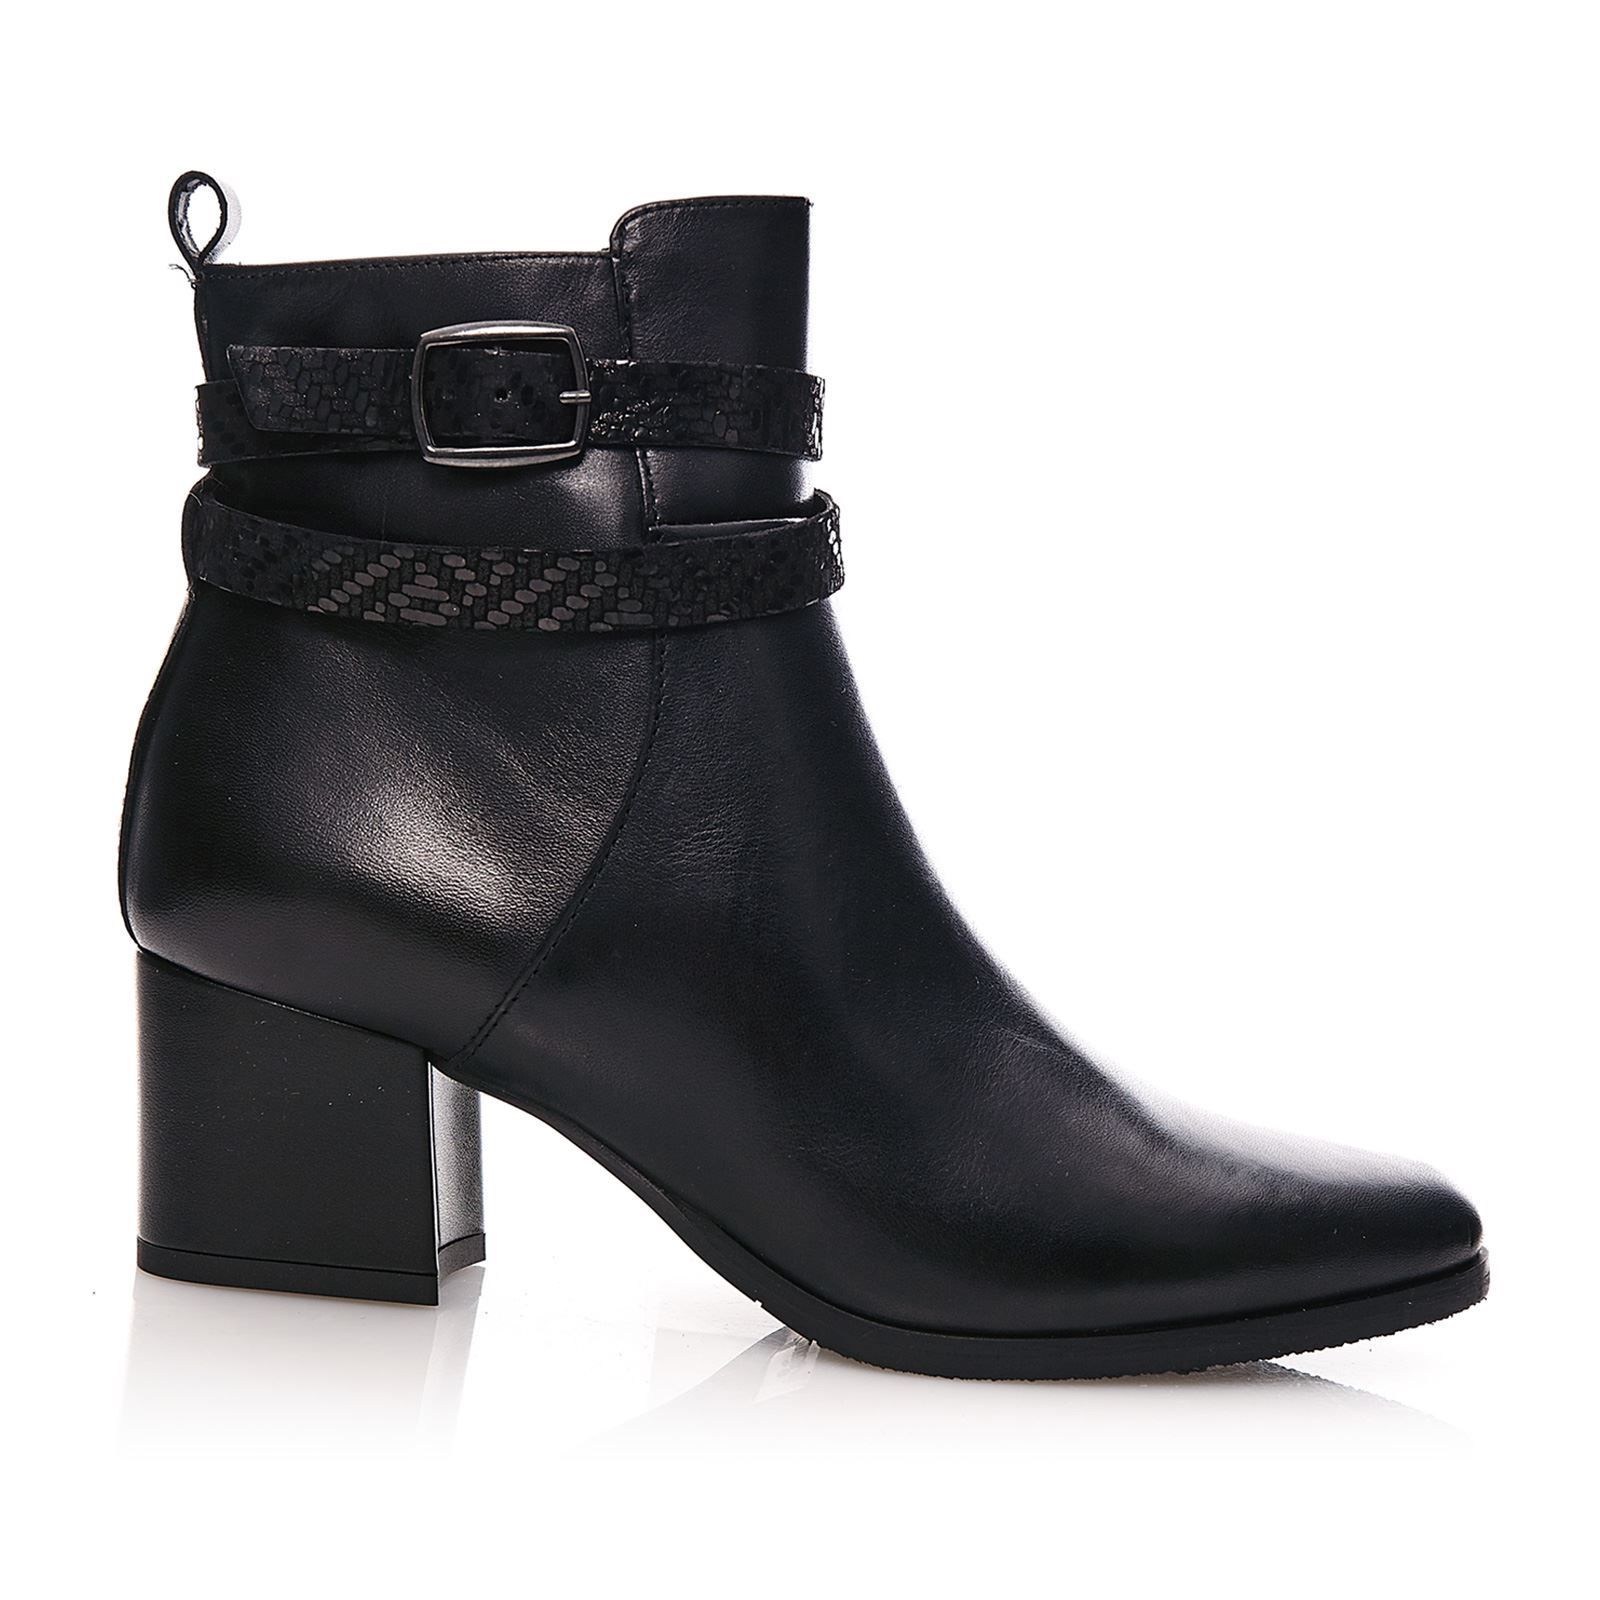 06132782ef116 Tamaris Rebekka - Bottines - noir